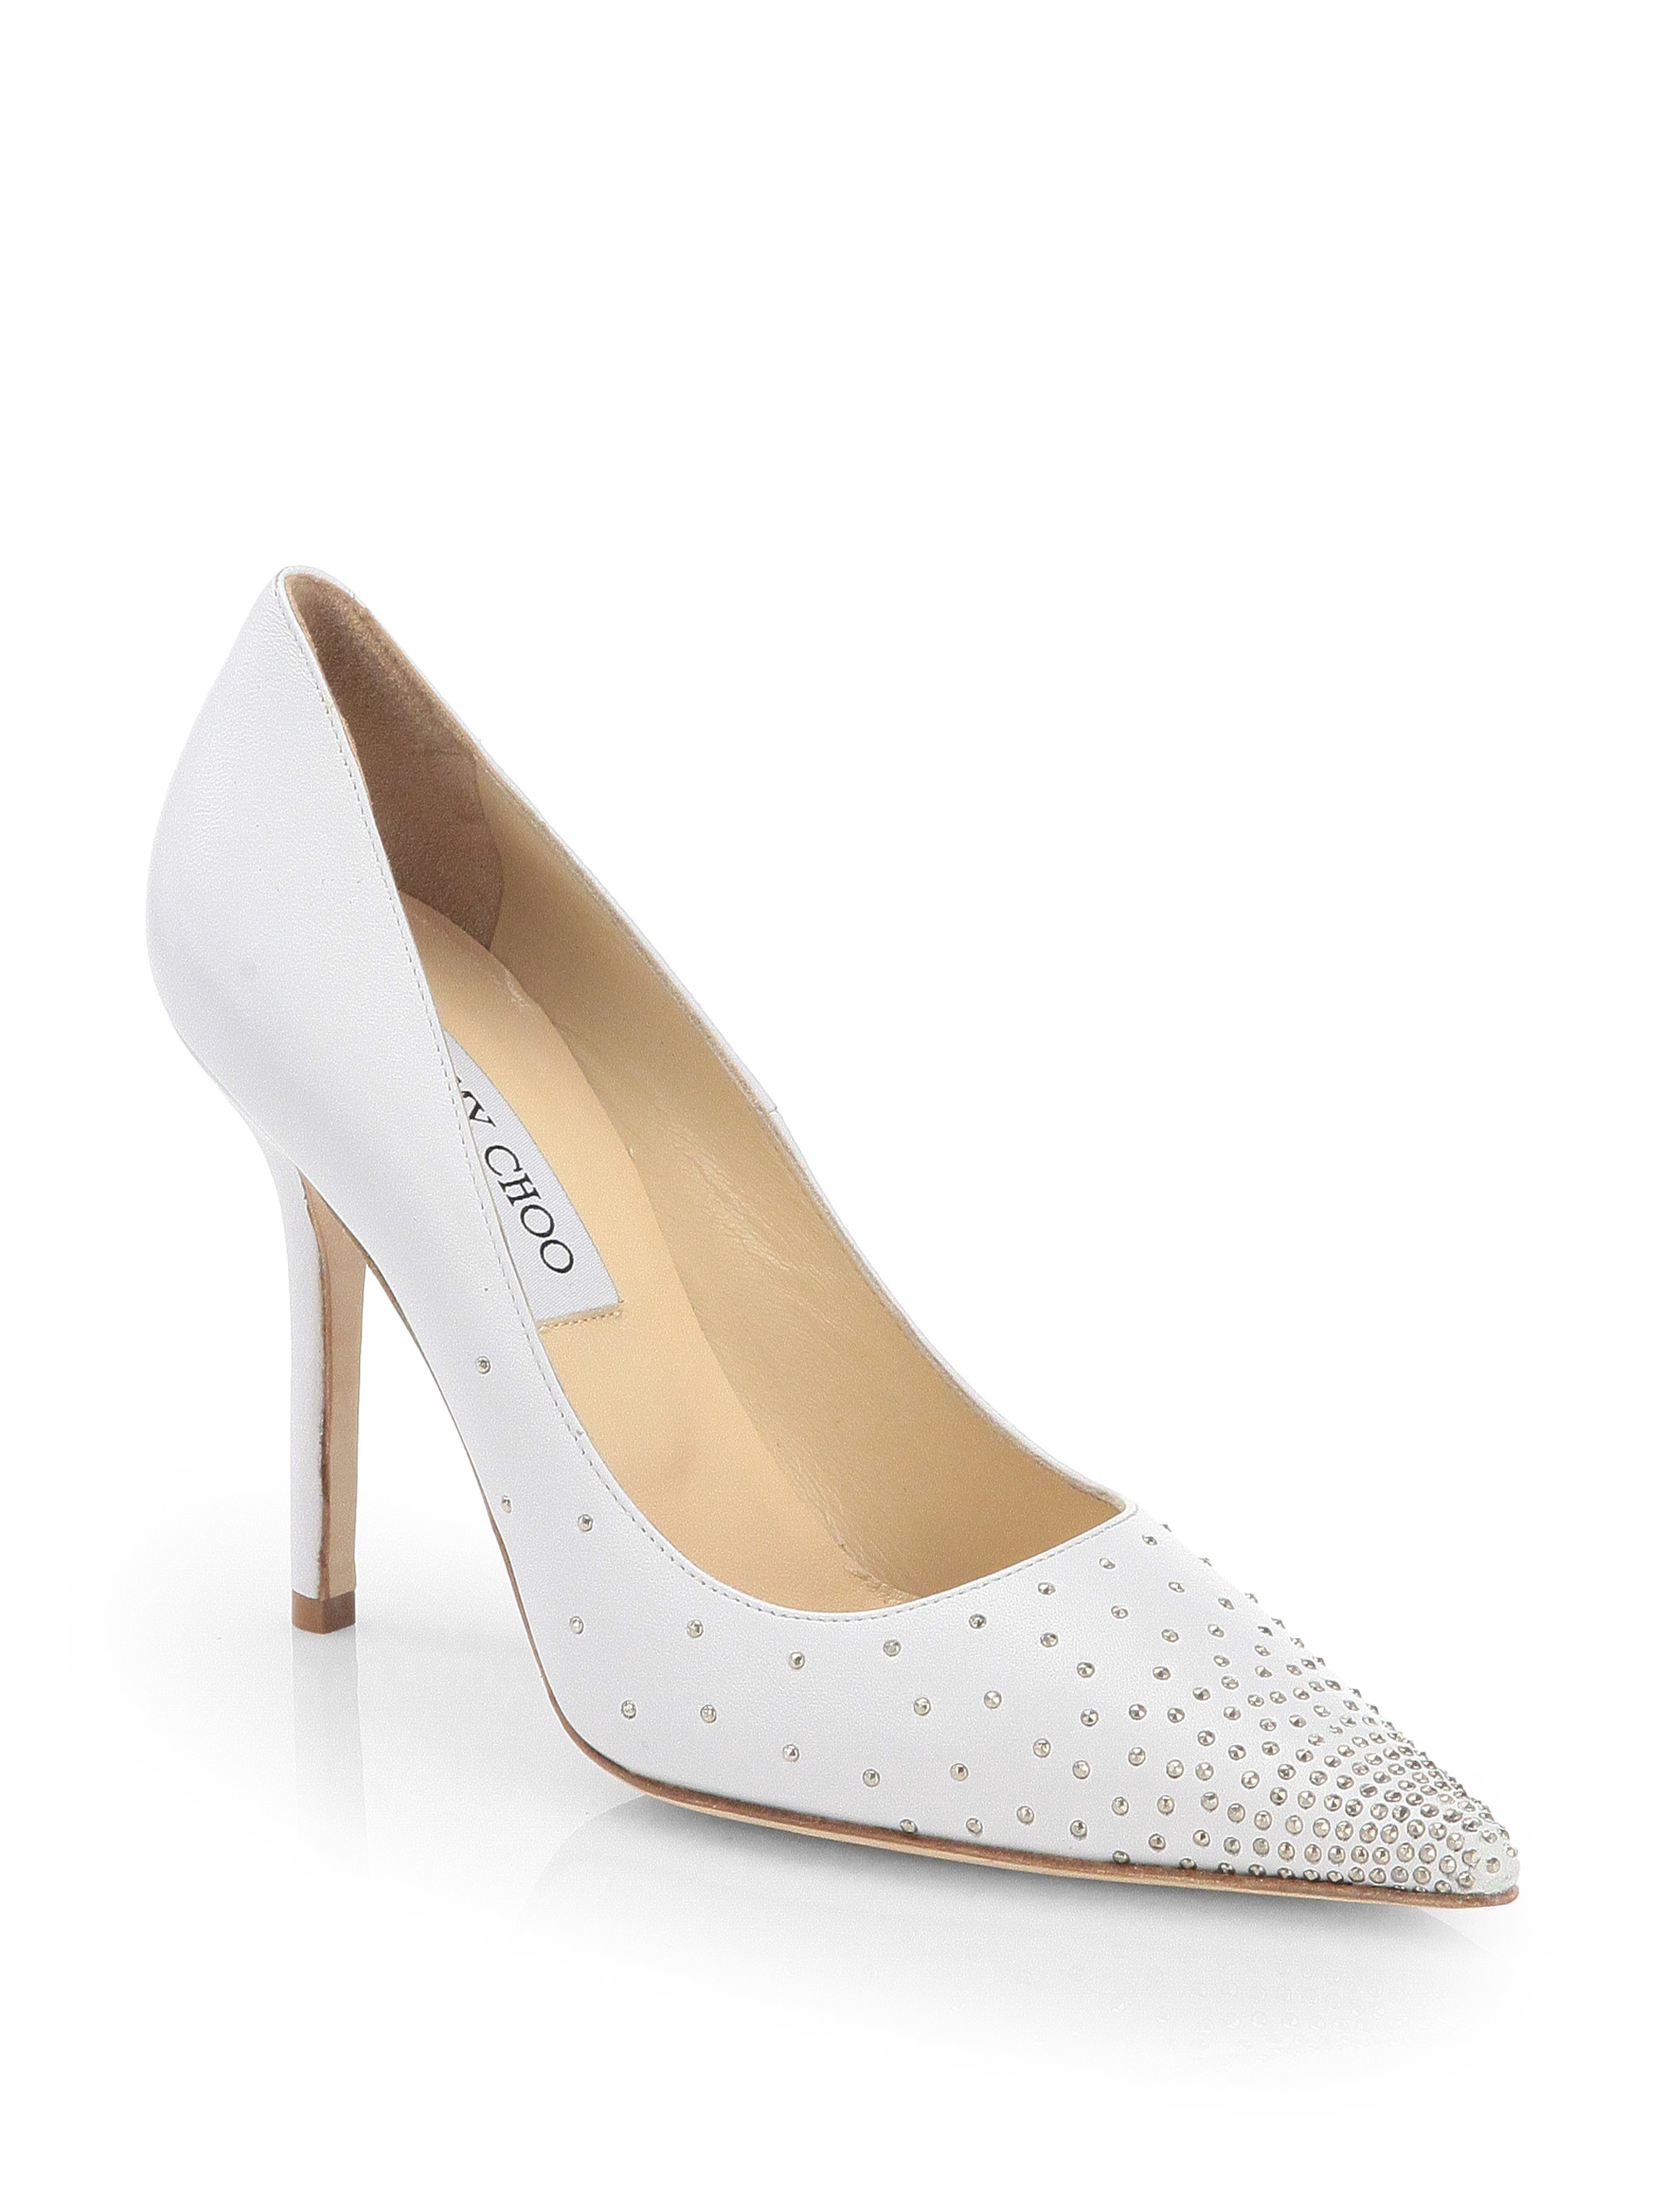 e64753f9160 czech jimmy choo studded pumps 26737 c7ff1